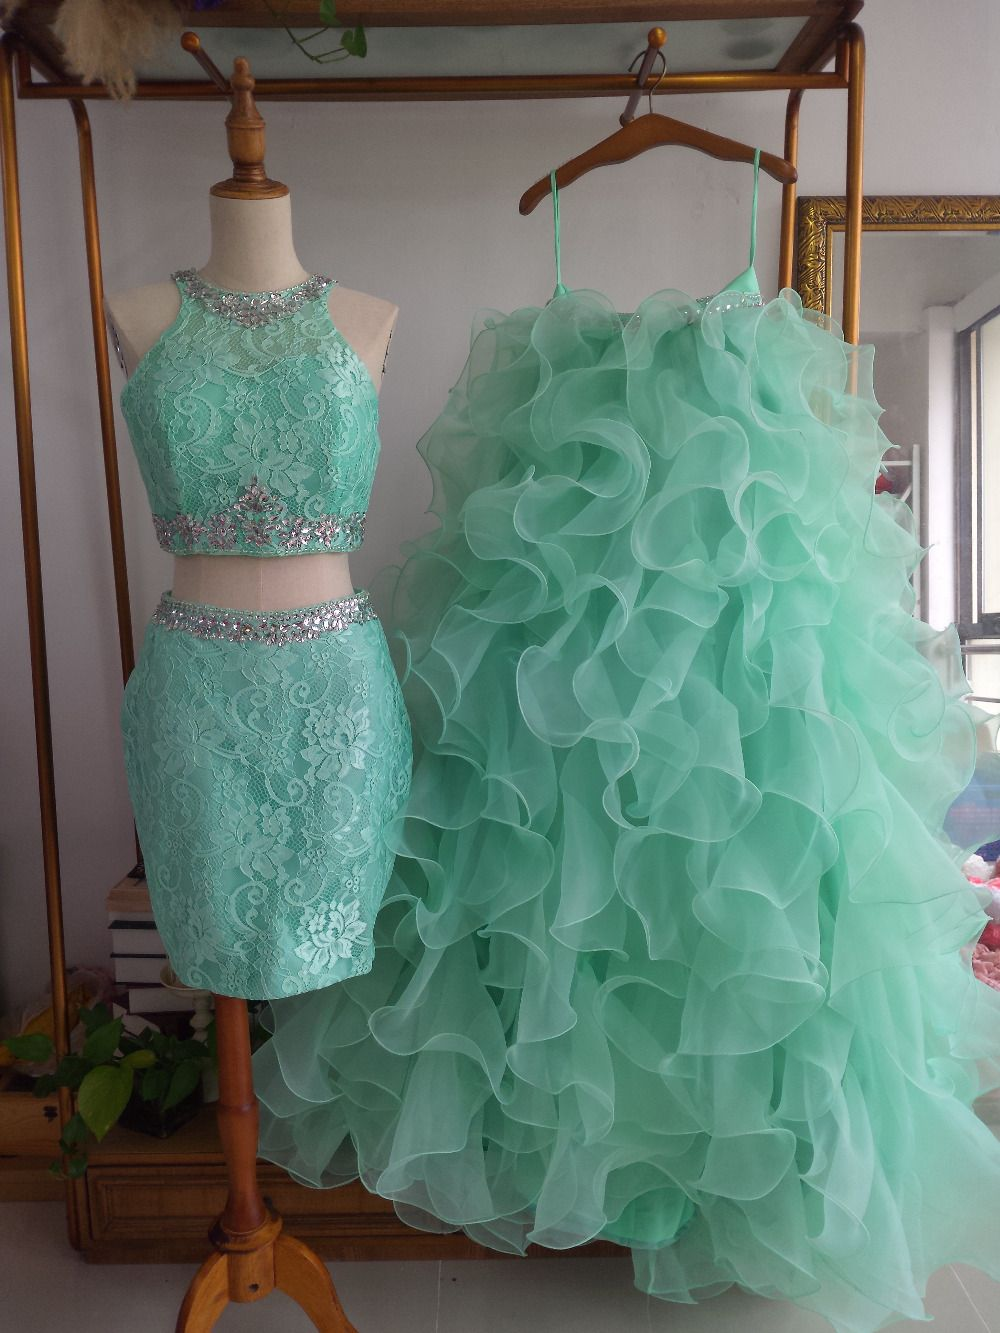 Aliexpress Com Buy Vinyl American Princess 45cm Dolls: Aliexpress.com : Buy Mint Ruffled 3 Pieces Ball Gown